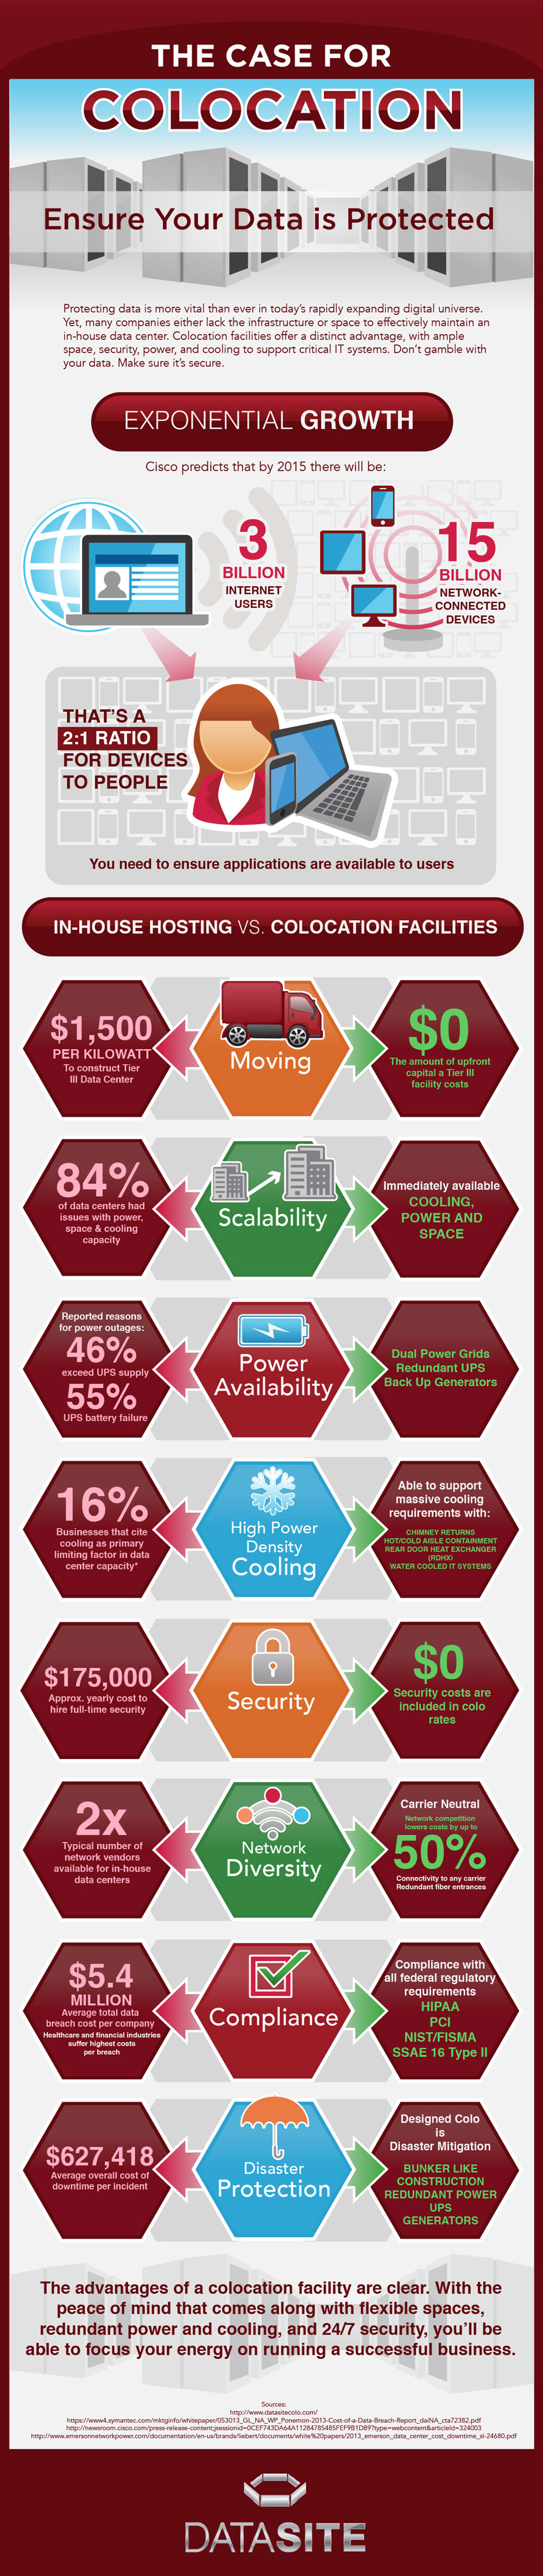 Colocation-centers-infographic-plaza